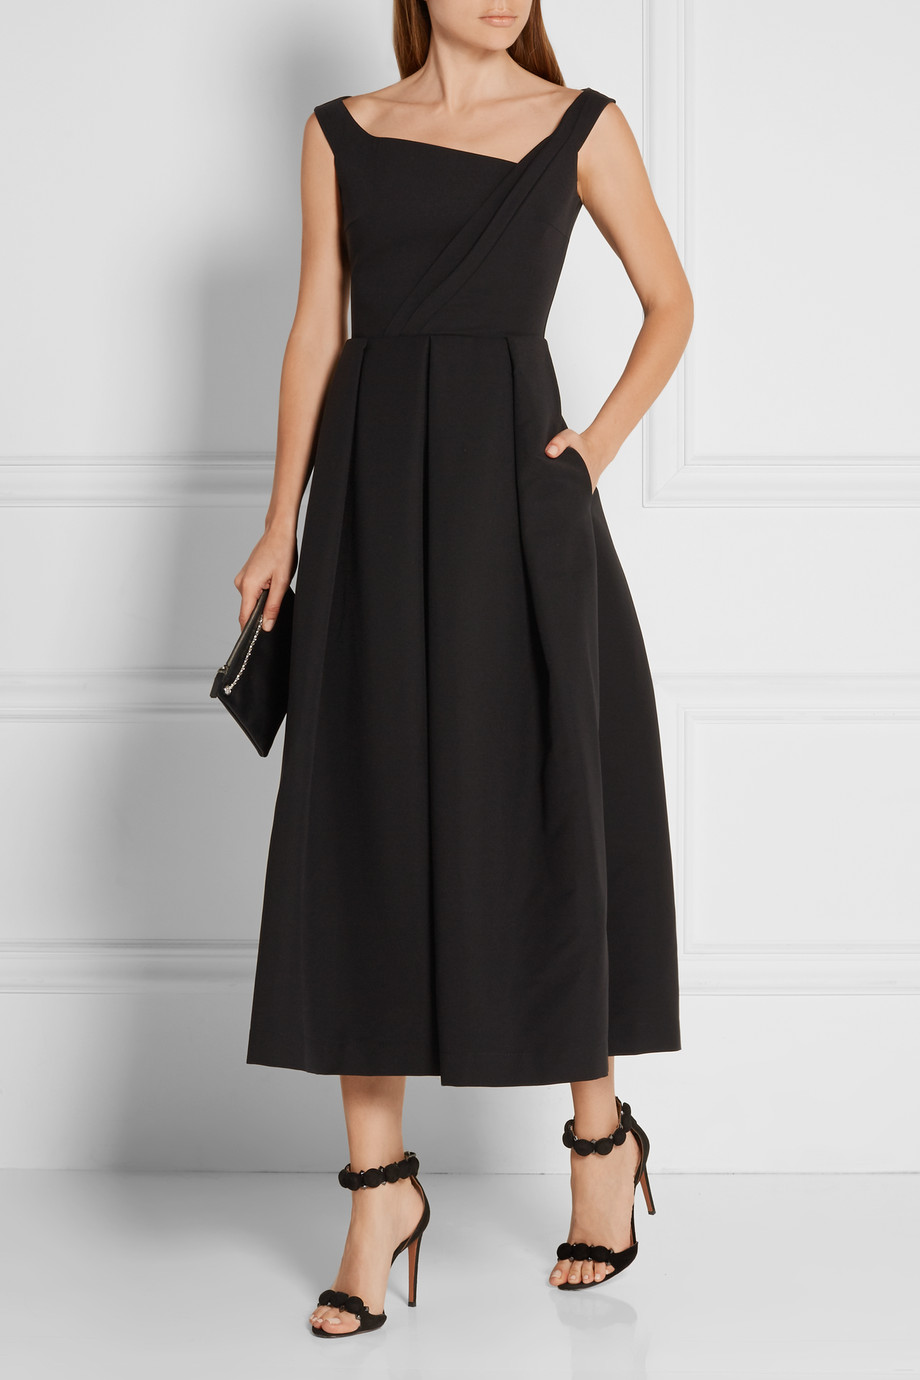 Black Preen Finella dress